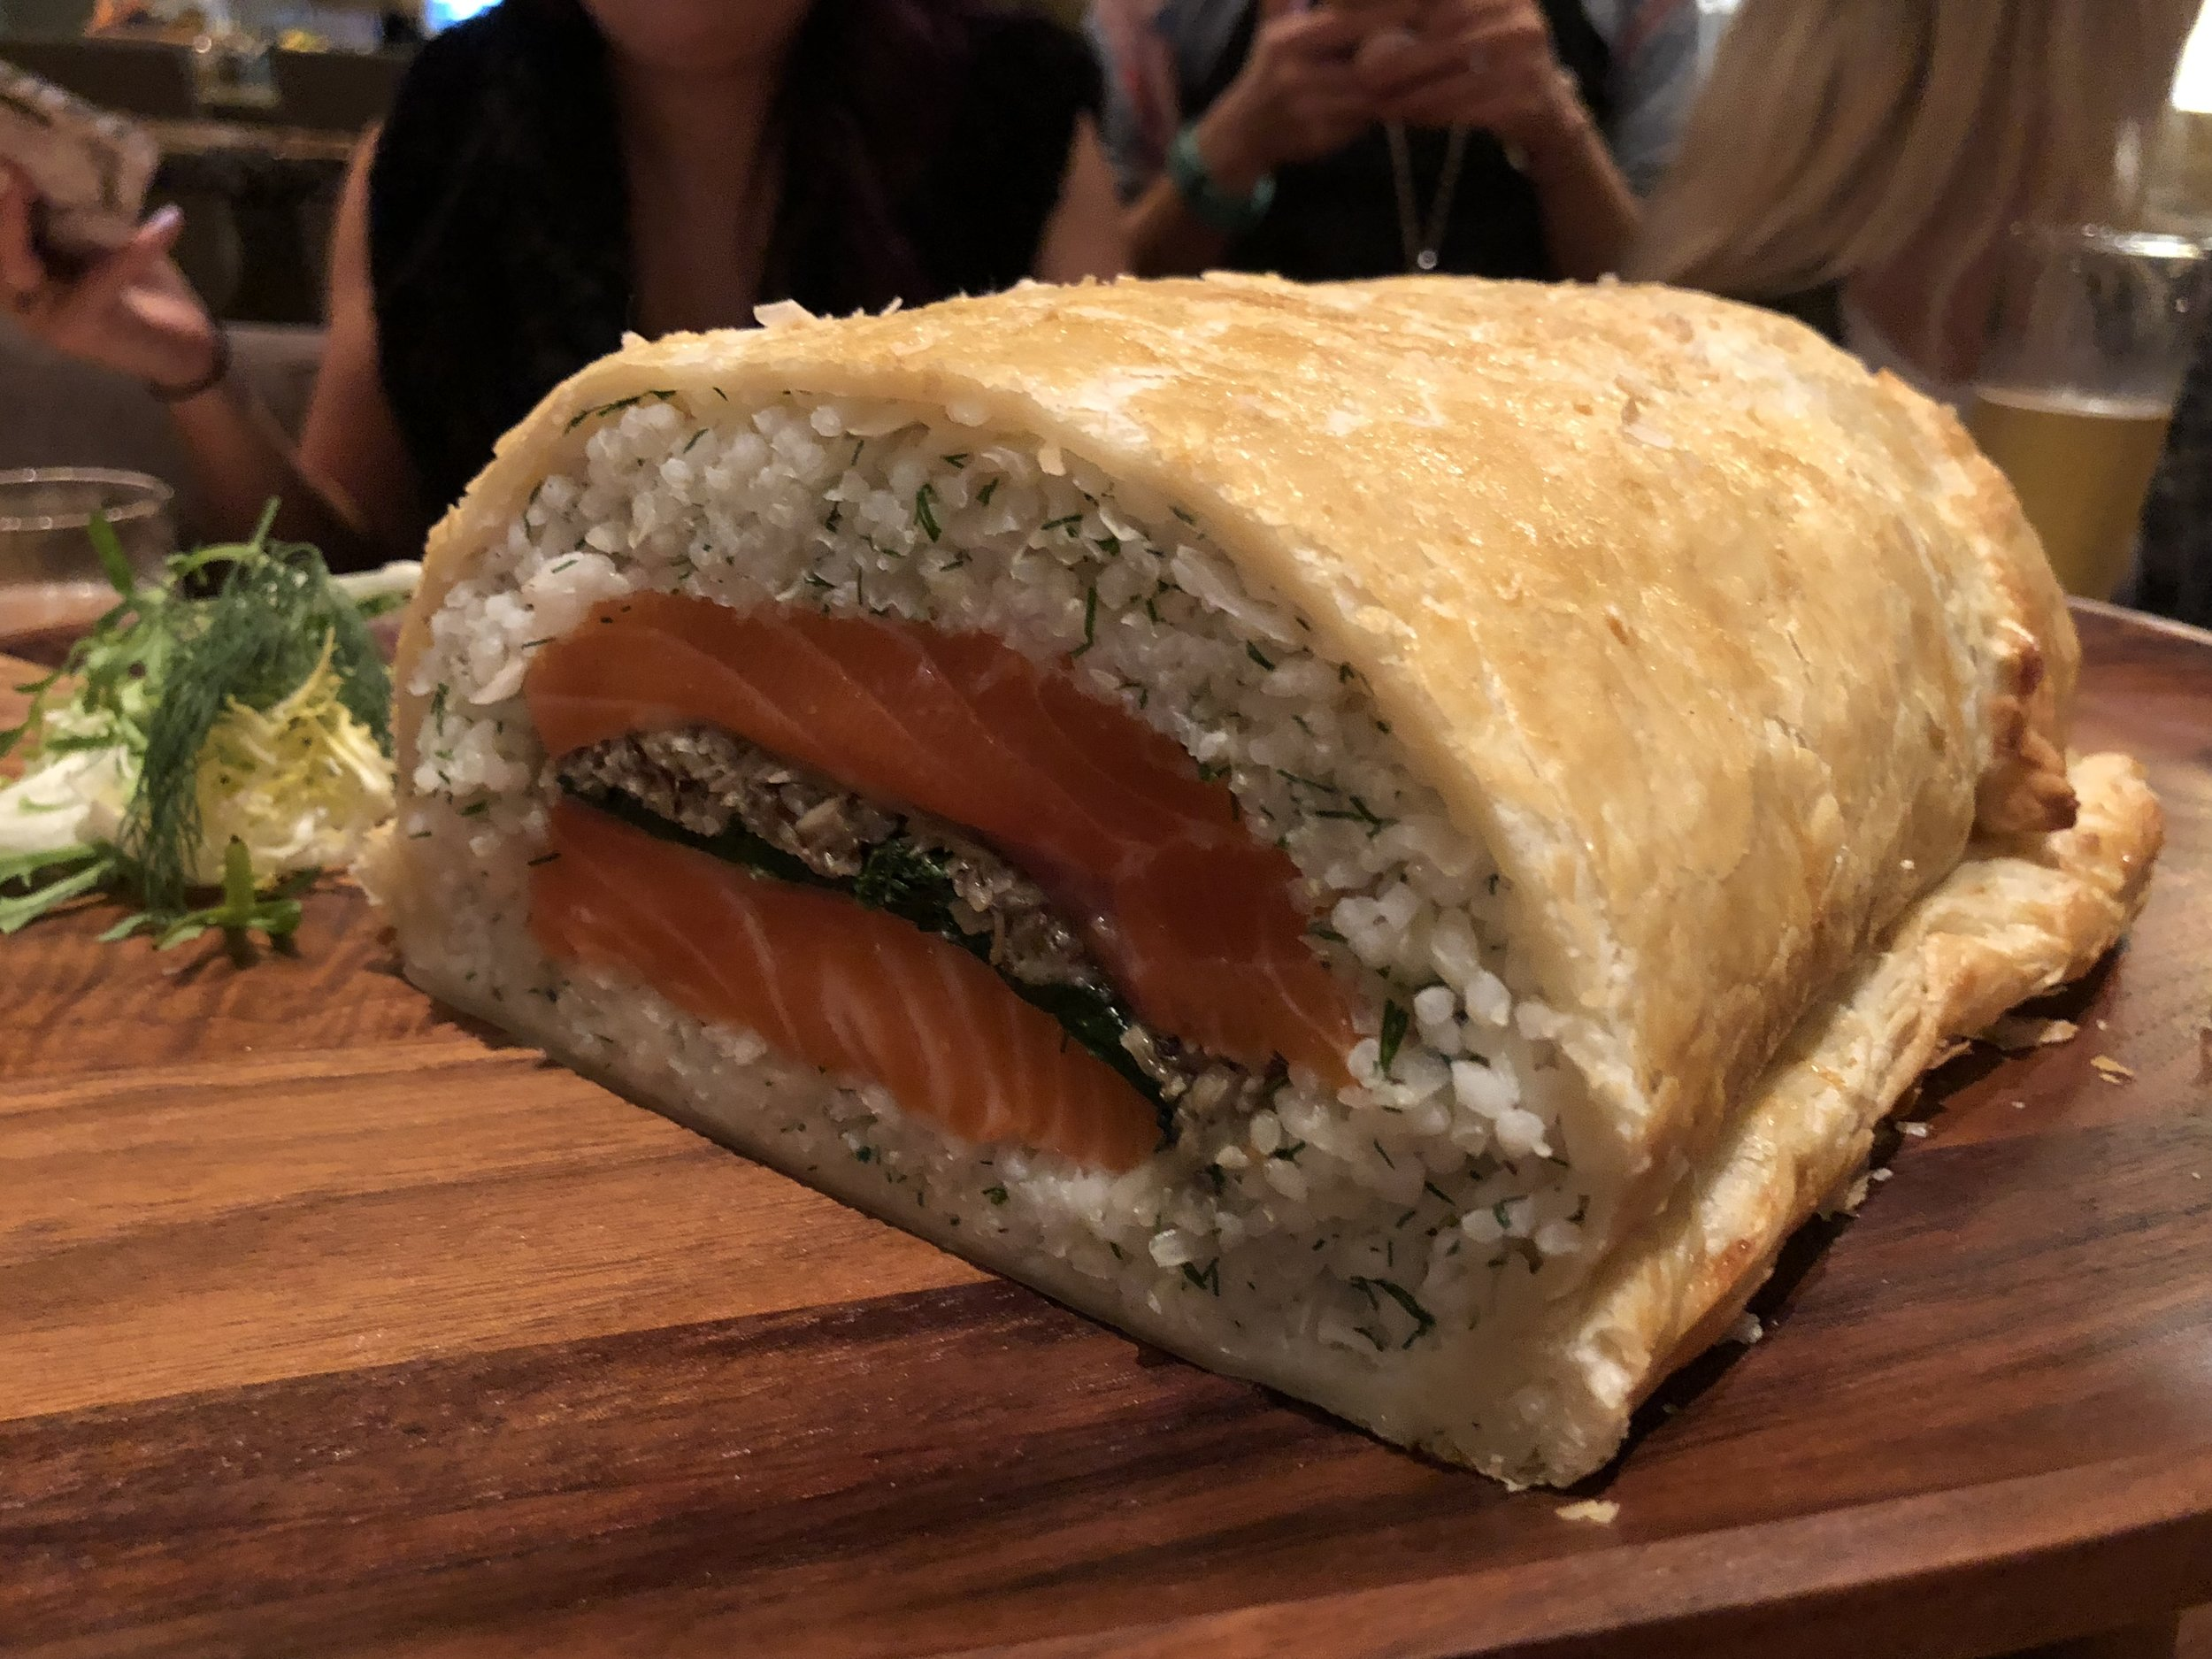 Salmon Koulibiac - Carolina Grit Rice. Cabbage. Mushroom Duxelle. Spinach. En Croute. Swedish Mustard.